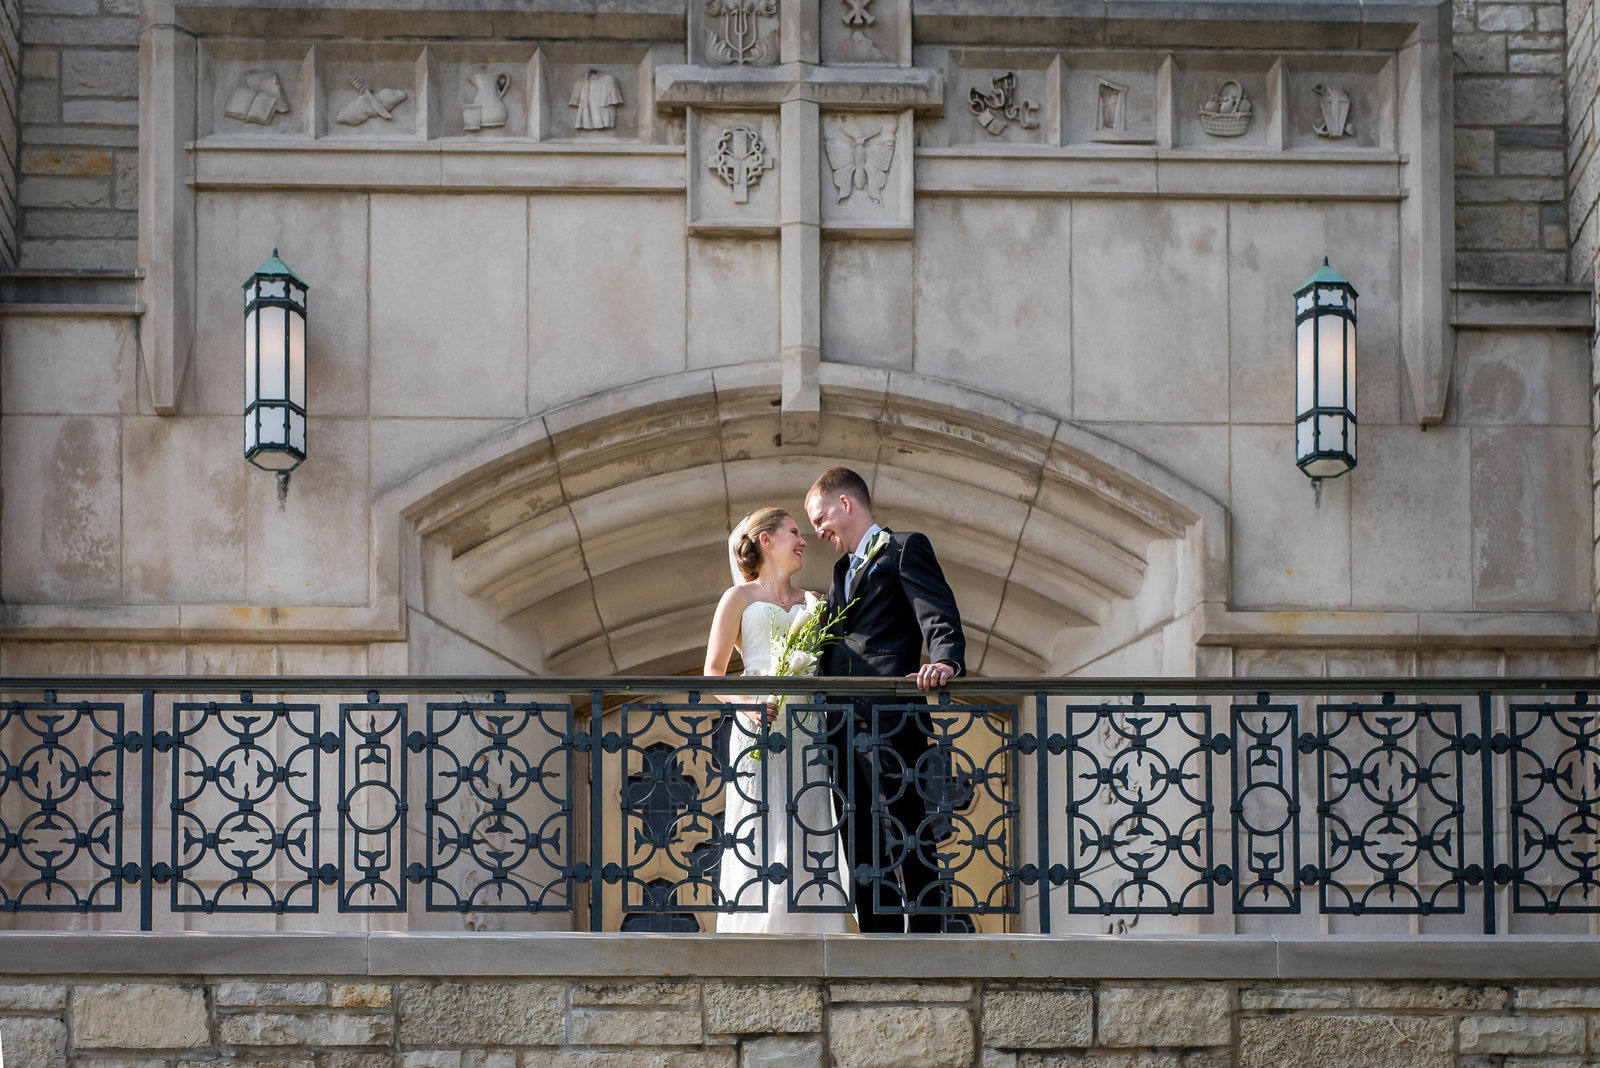 wedding-bride-groom-church-st-charles-balcony